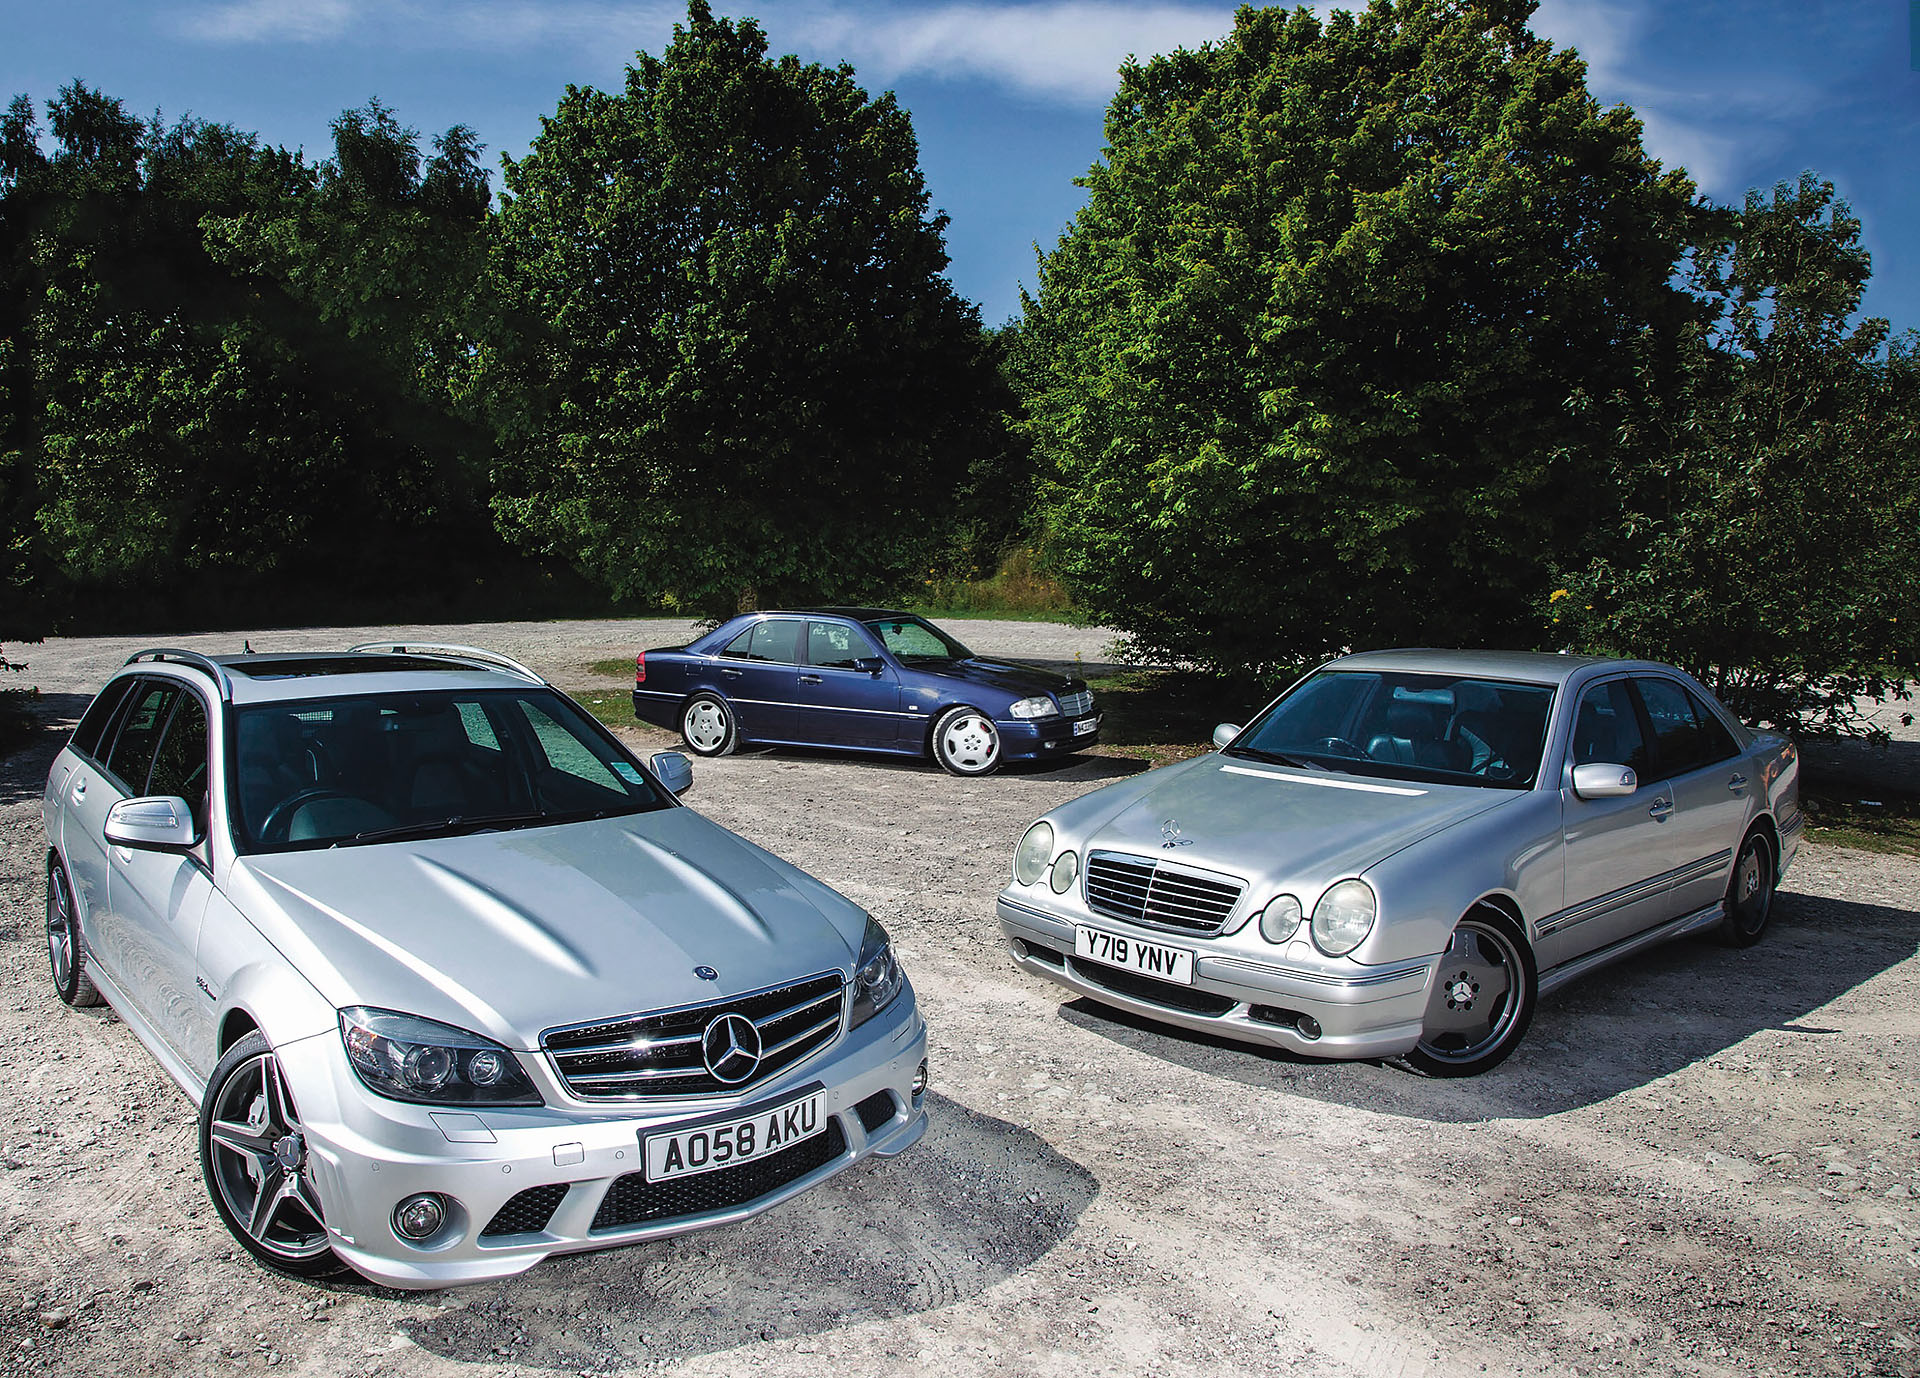 Ownership mercedes benz c36 amg w202 e55 amg w210 and c63 for Fastest mercedes benz amg